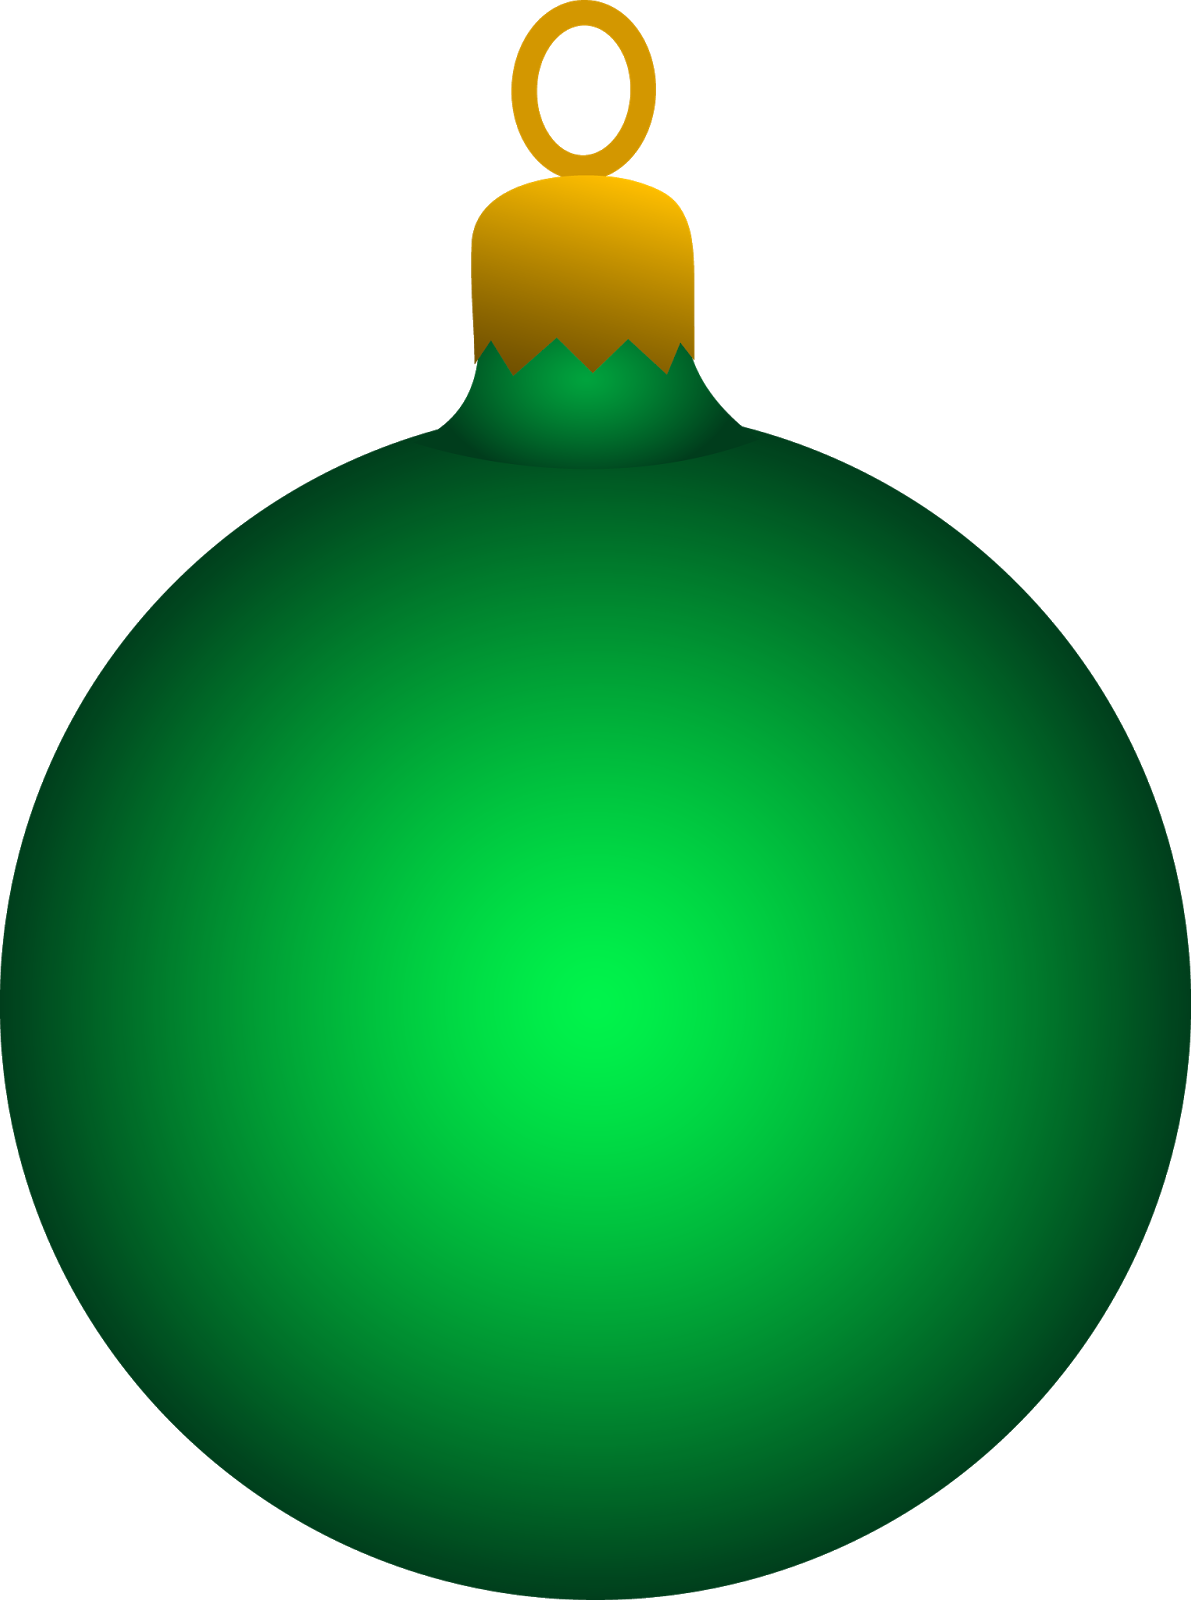 Christmas Ornaments clipart #19 clipart Christmas Ornaments Ornaments